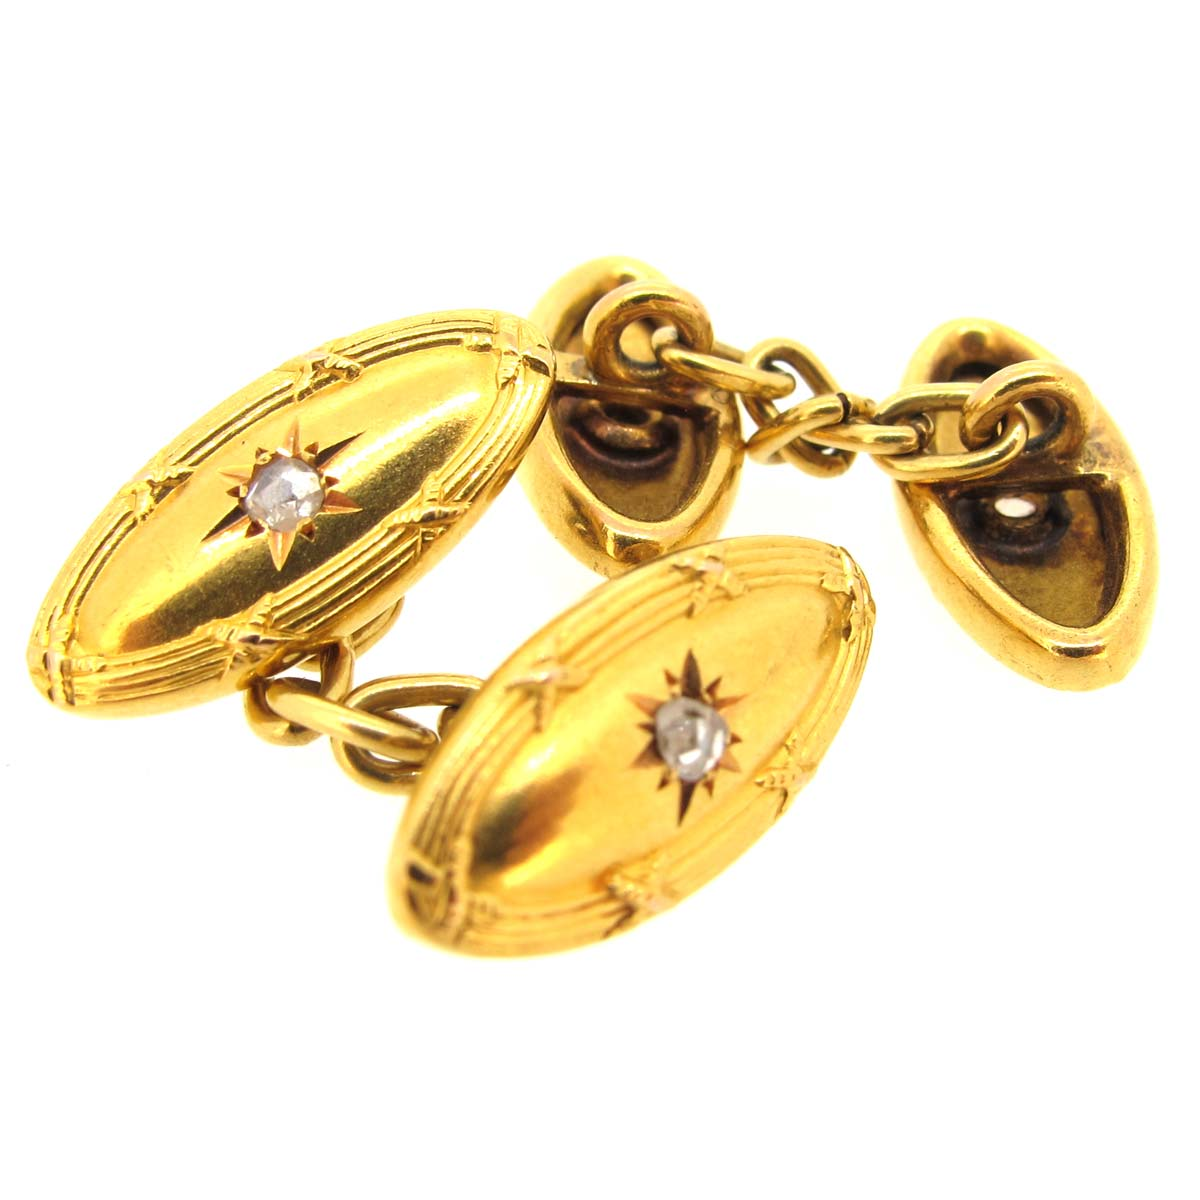 Antique gold & diamond cufflinks